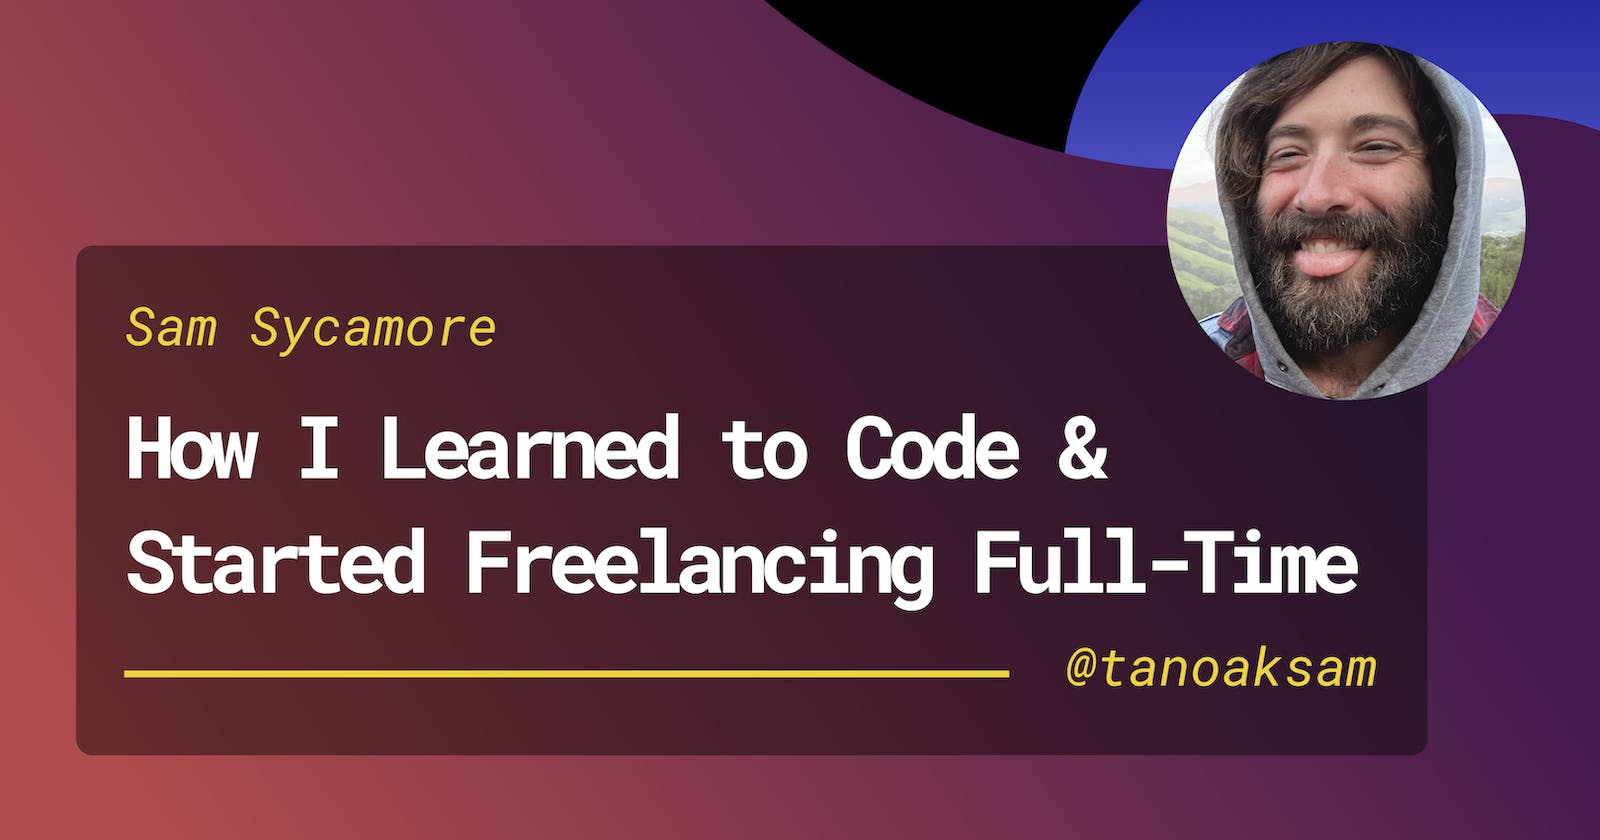 How I Learned to Code and Started Freelancing Full-Time in 8 Months